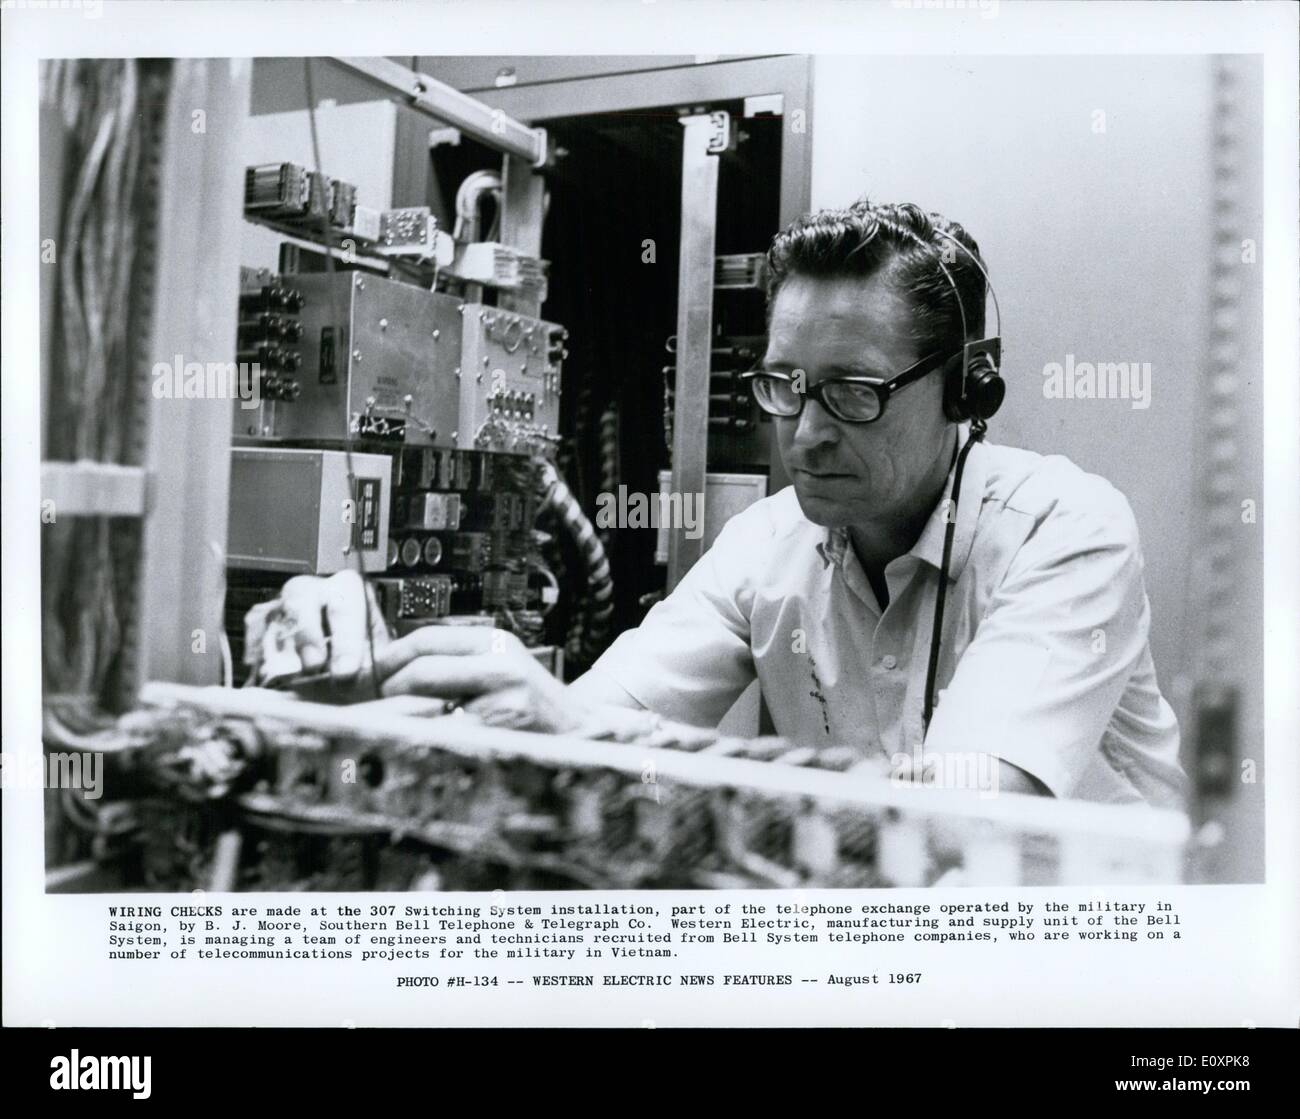 08, 1967 - wiring checks are made at the 307 switching system installation